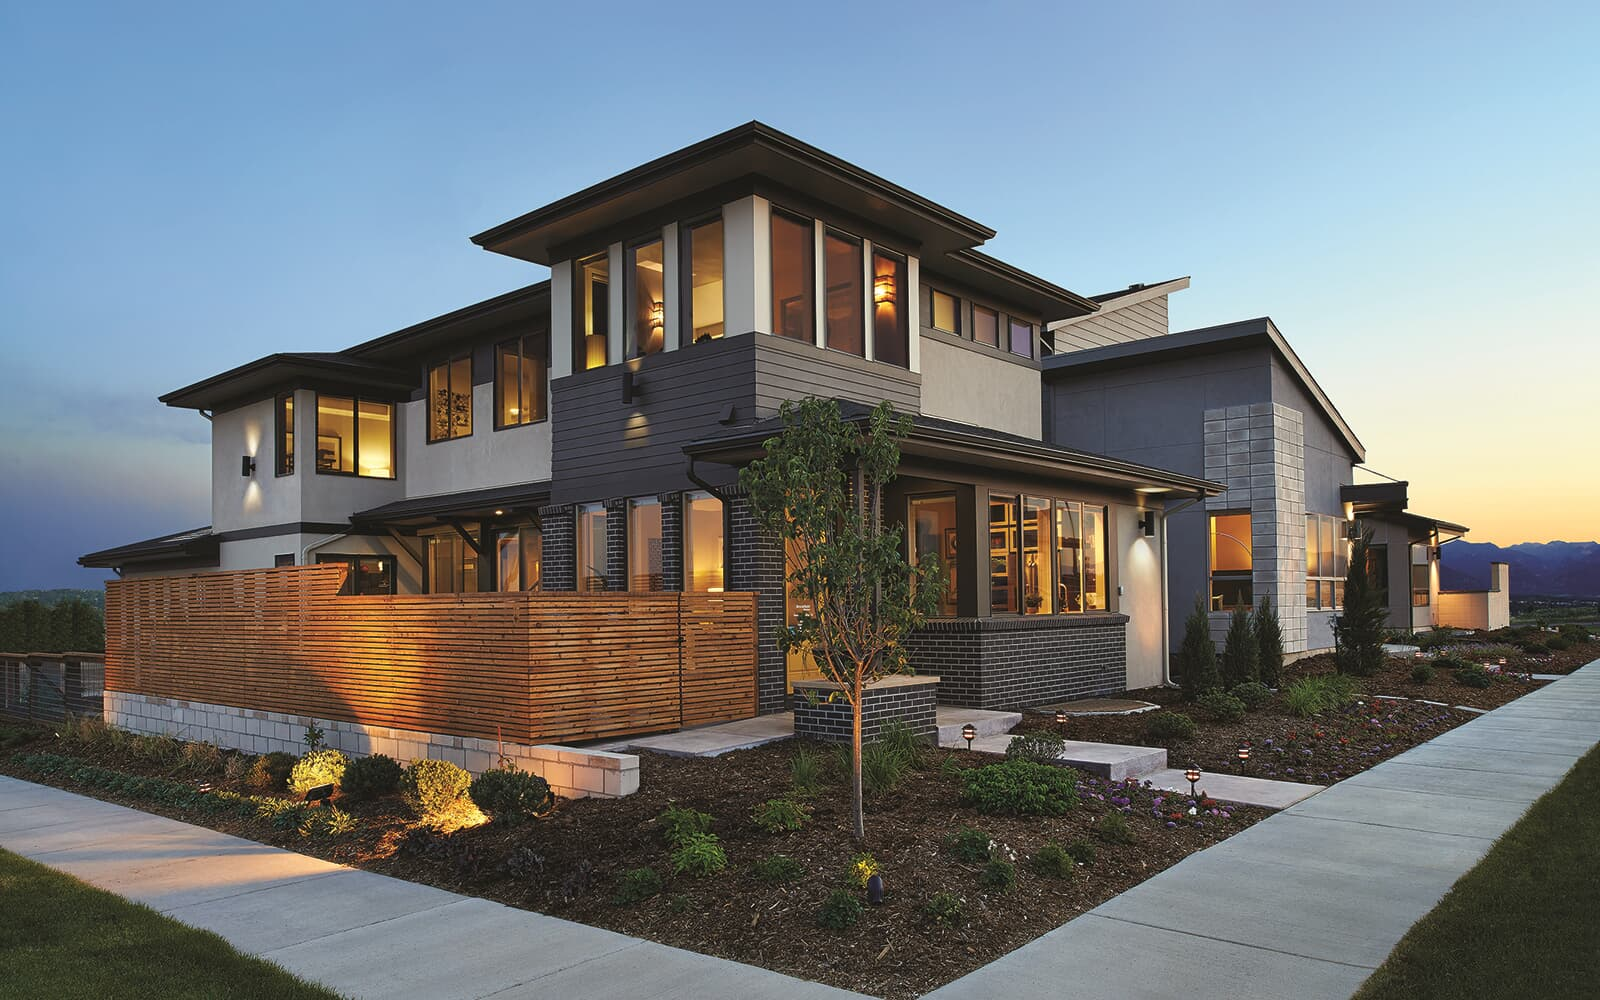 Signature-Two-Model-Exterior-Midtown-Denver-Colorado